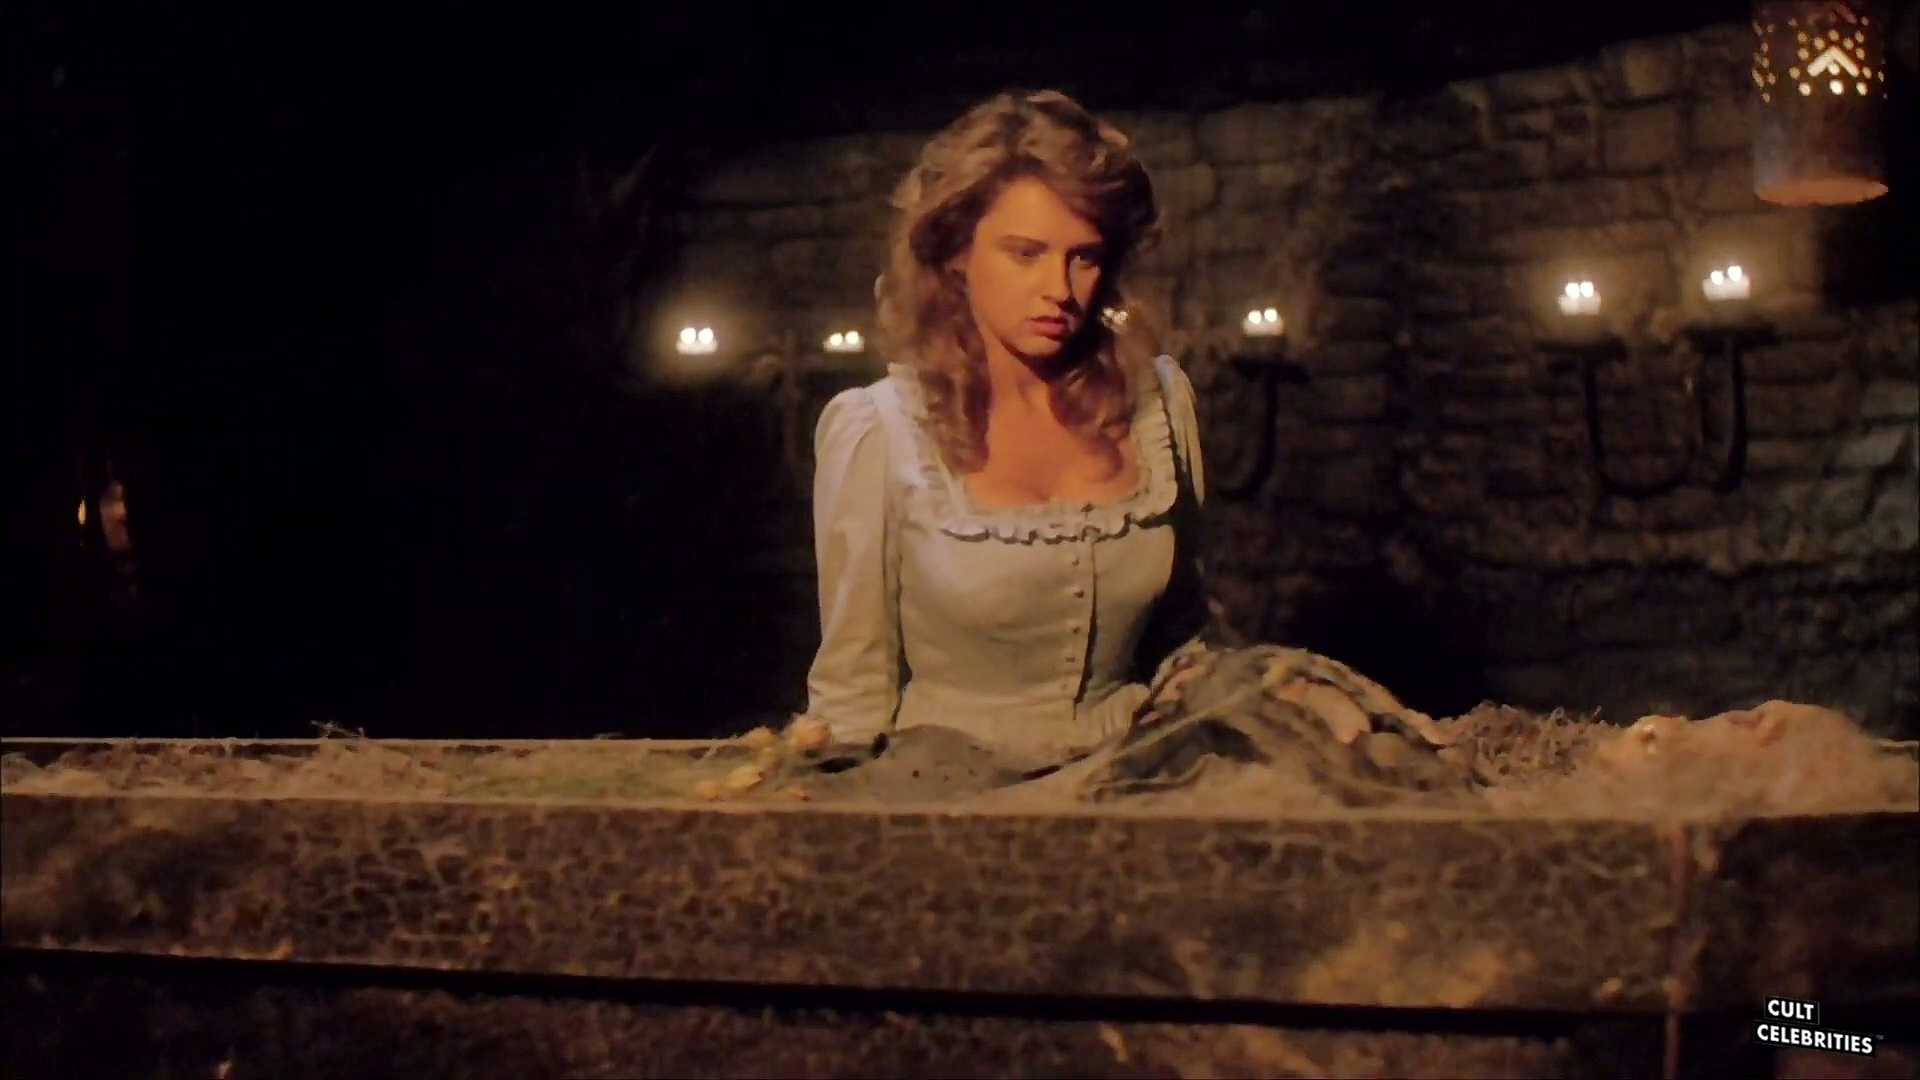 Gail Thackray (also known as Gail Harris) in The Haunting of Morellawith Lana Clarkson, Debbie Dutch and Maria Ford.